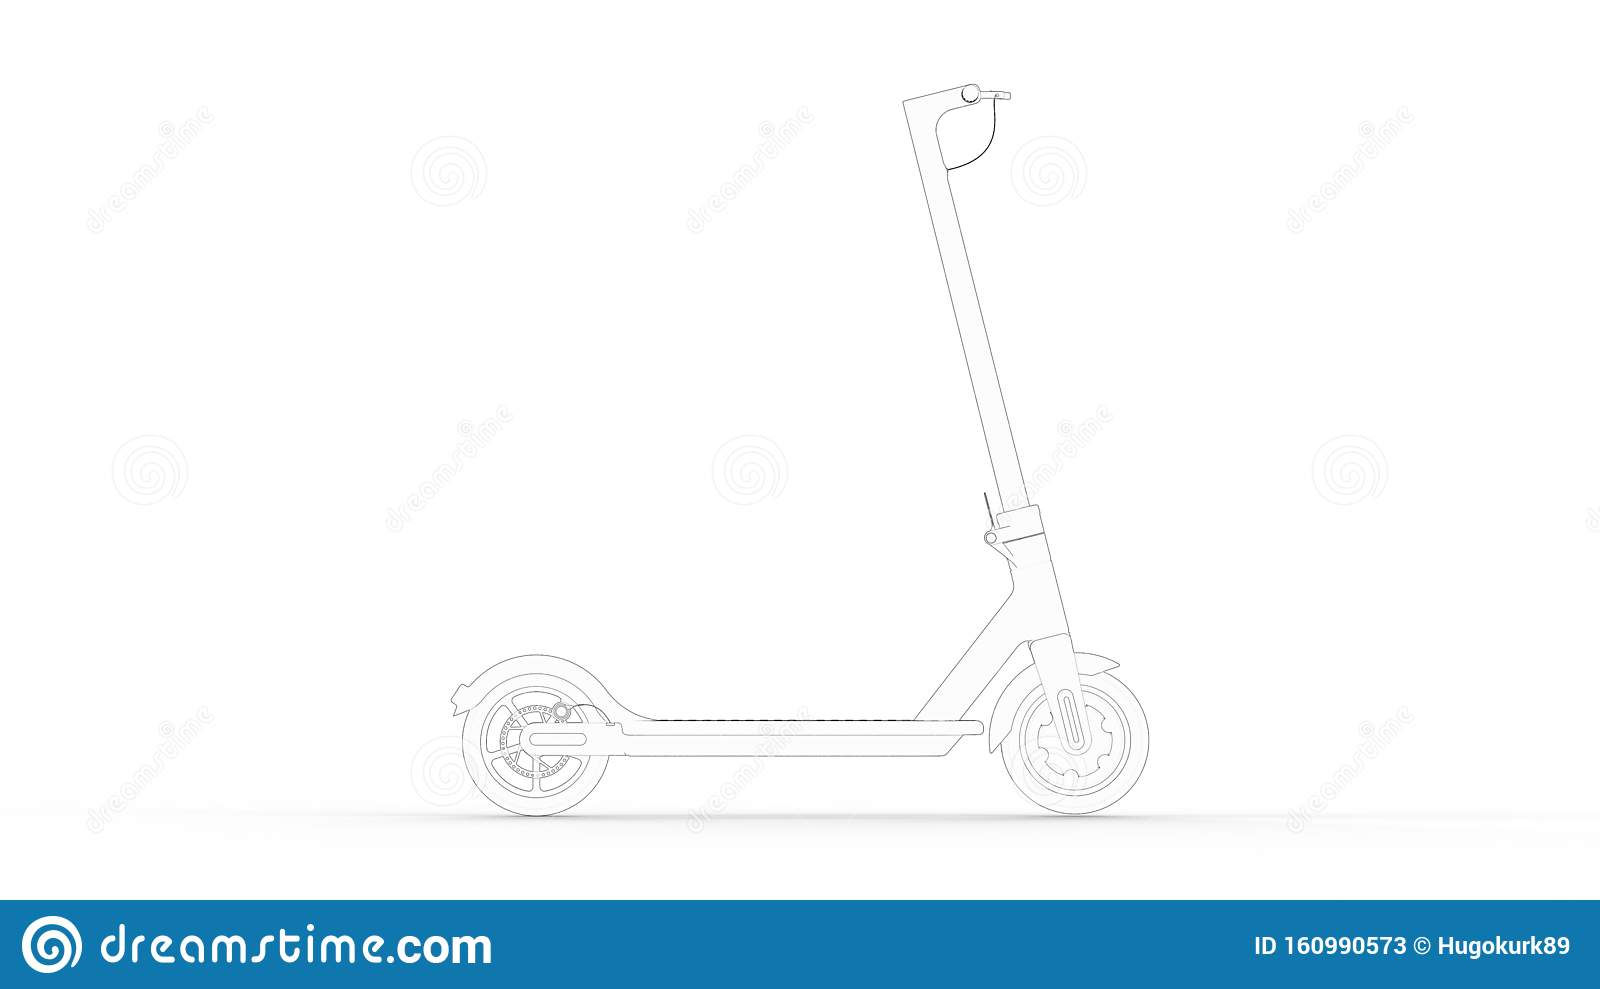 3d Rendering Multiple Technical Drawing Views Of An Electric Scooter Stock Illustration Illustration Of Future Ecological 160990573